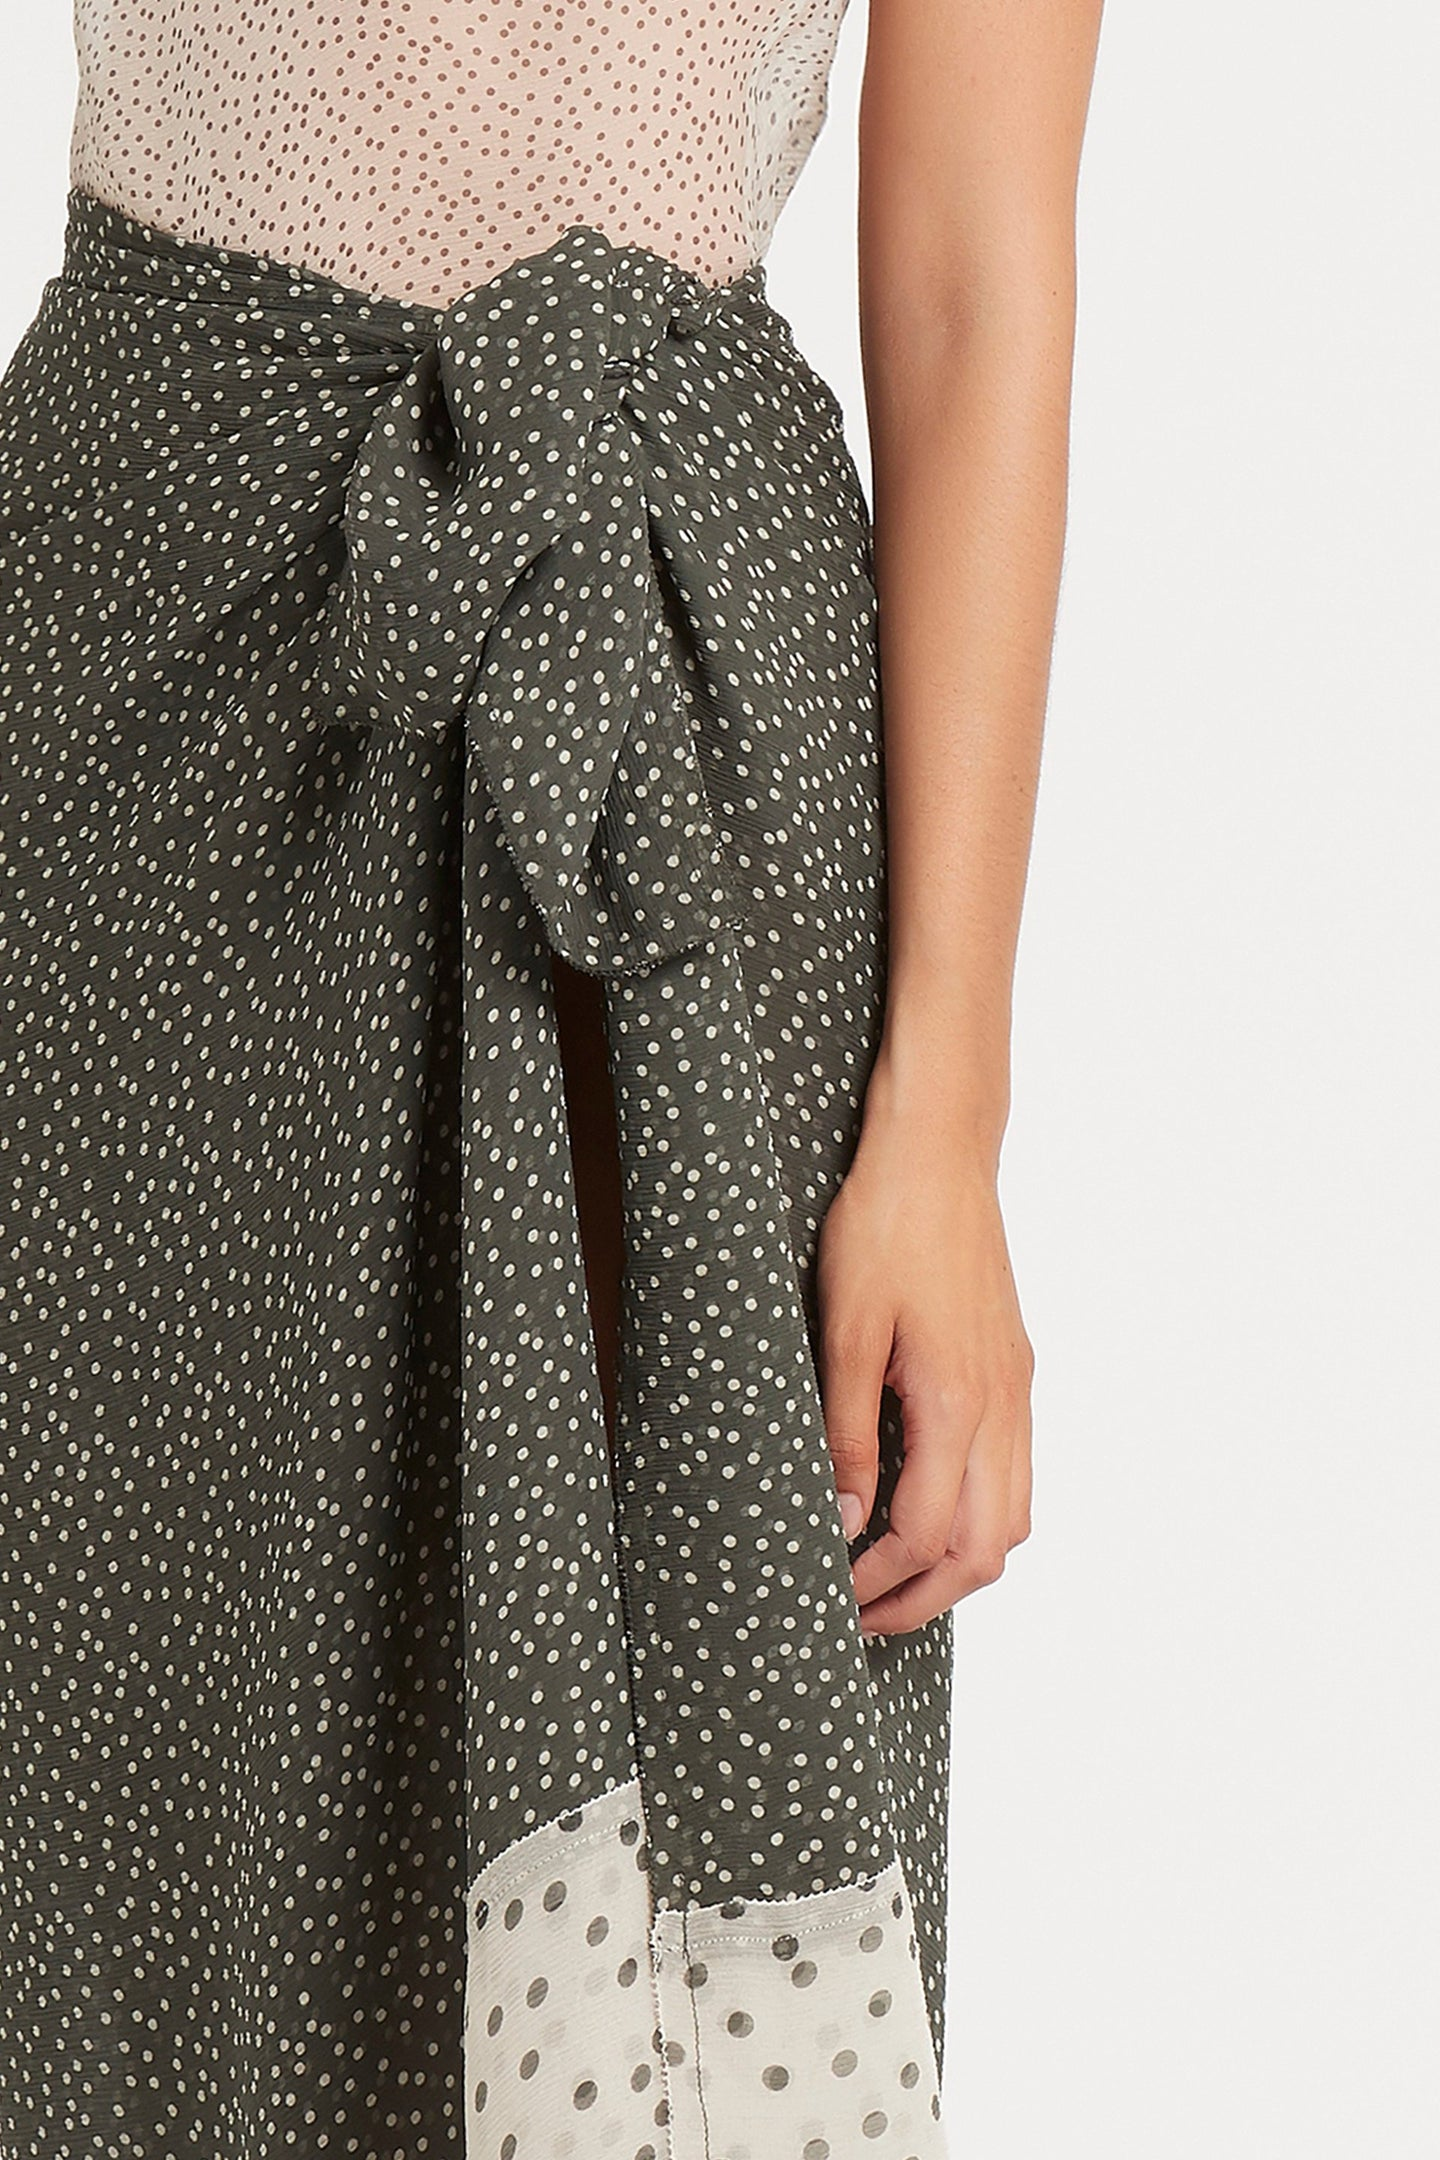 SIR the label ISABELLA SARONG OLIVE POLKA DOT